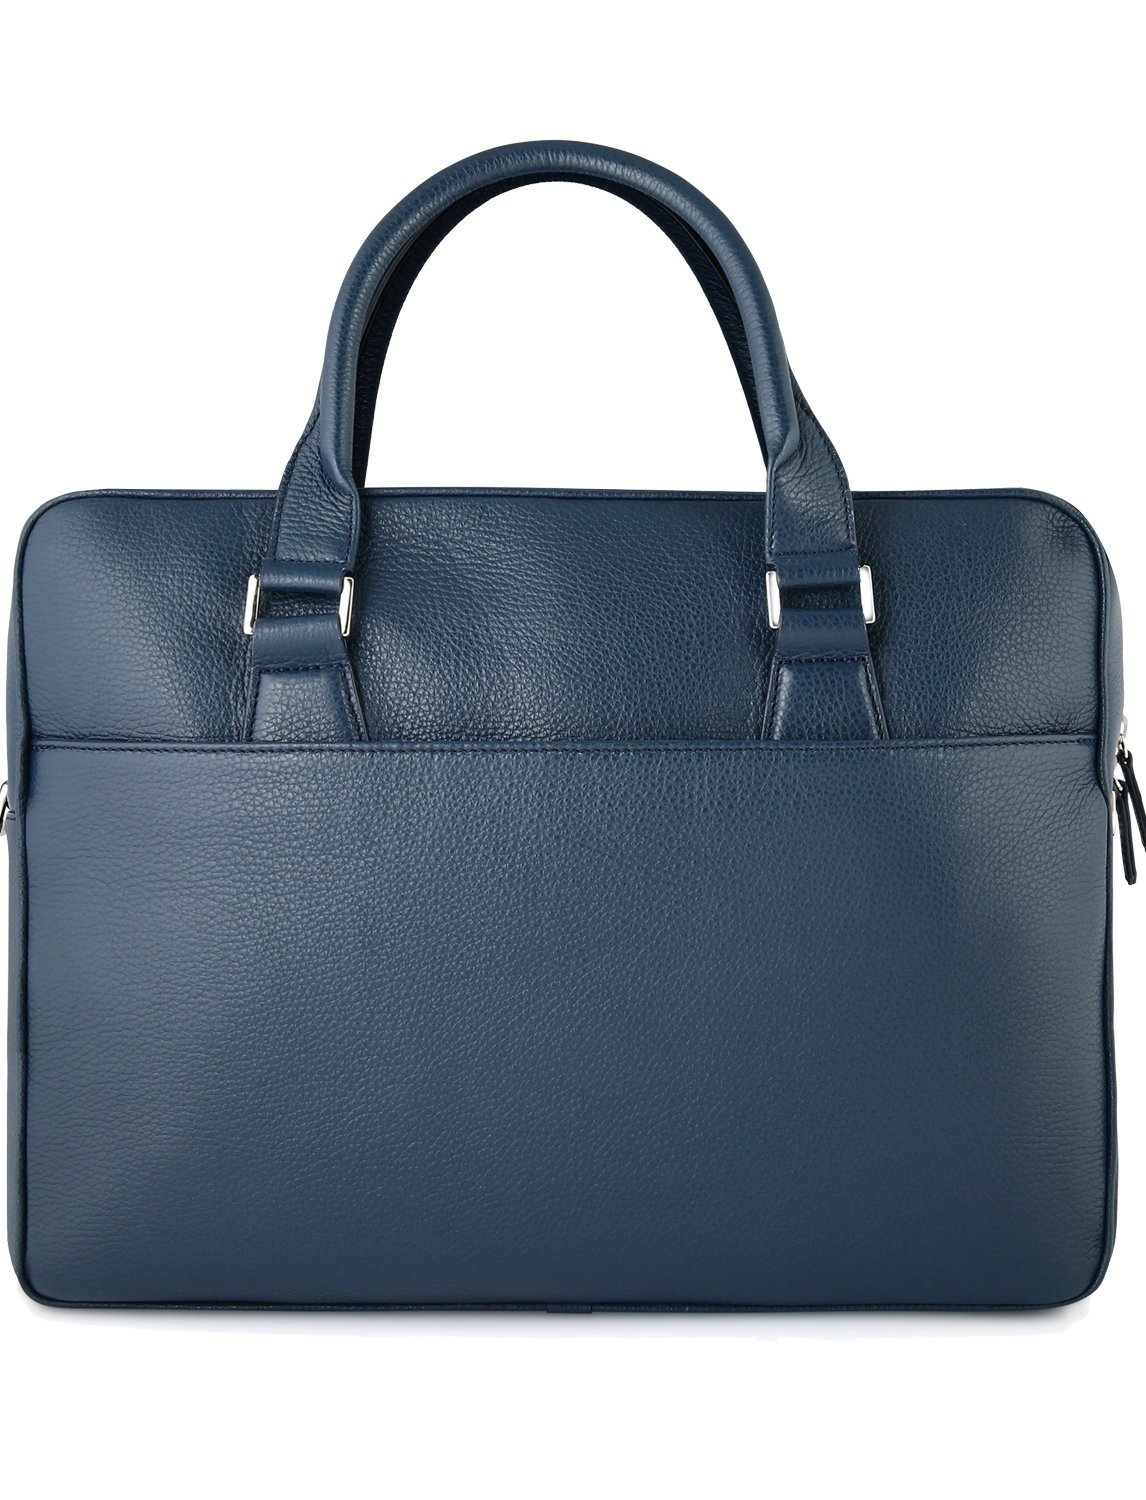 Grained Calfskin Leather Briefcase